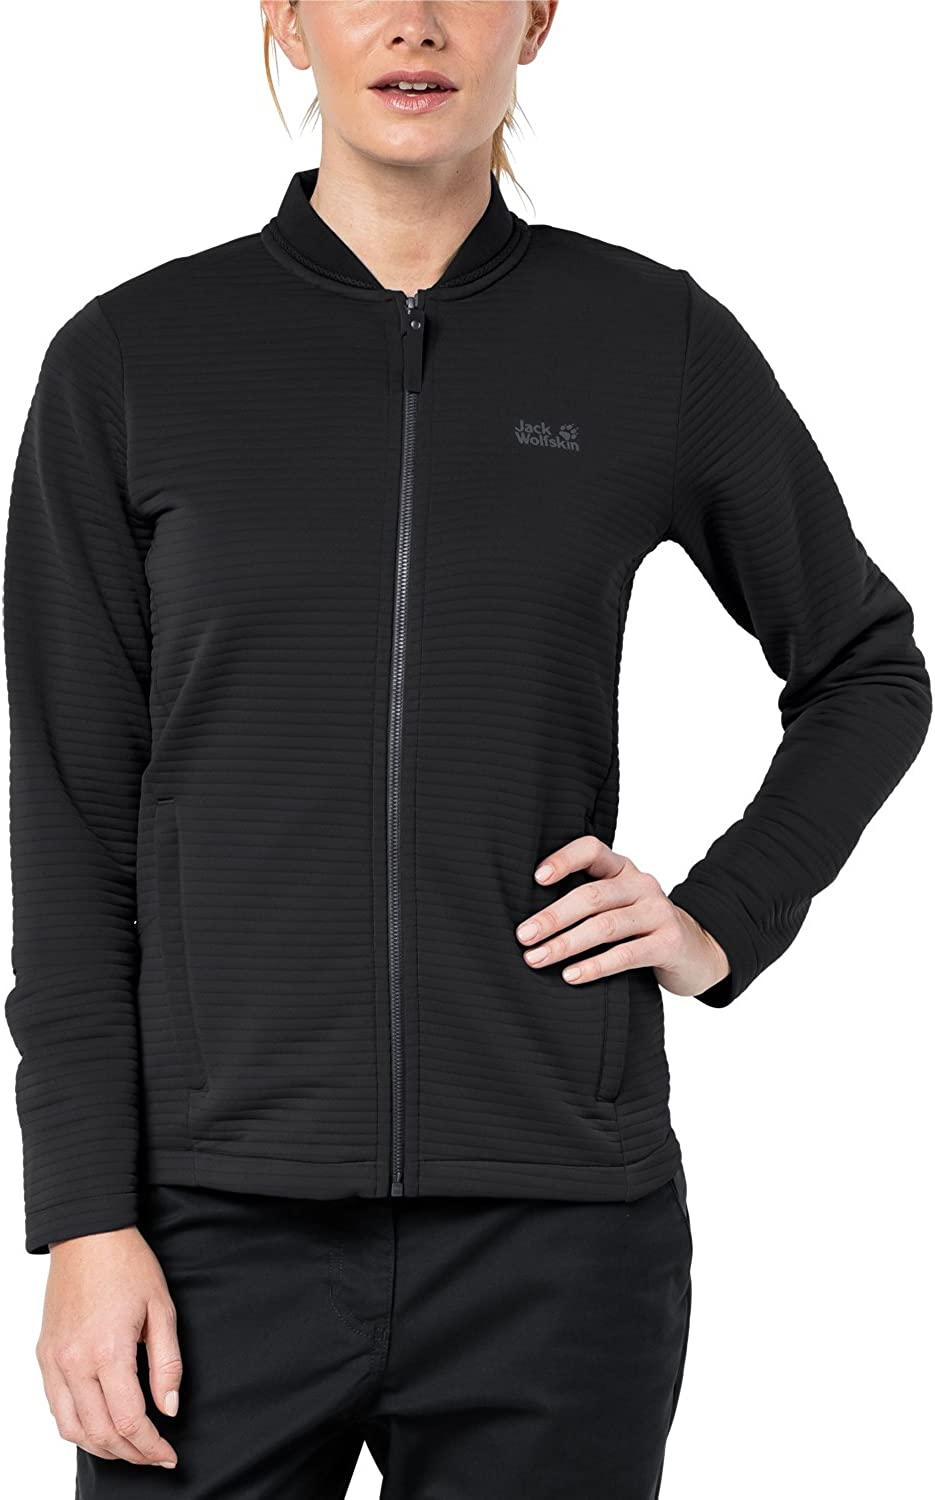 (Black, 20  Bust 44  (110114cm))  Jack Wolfskin Womens Ladies Modesto Breathable Fast Dry Fleece Jacket